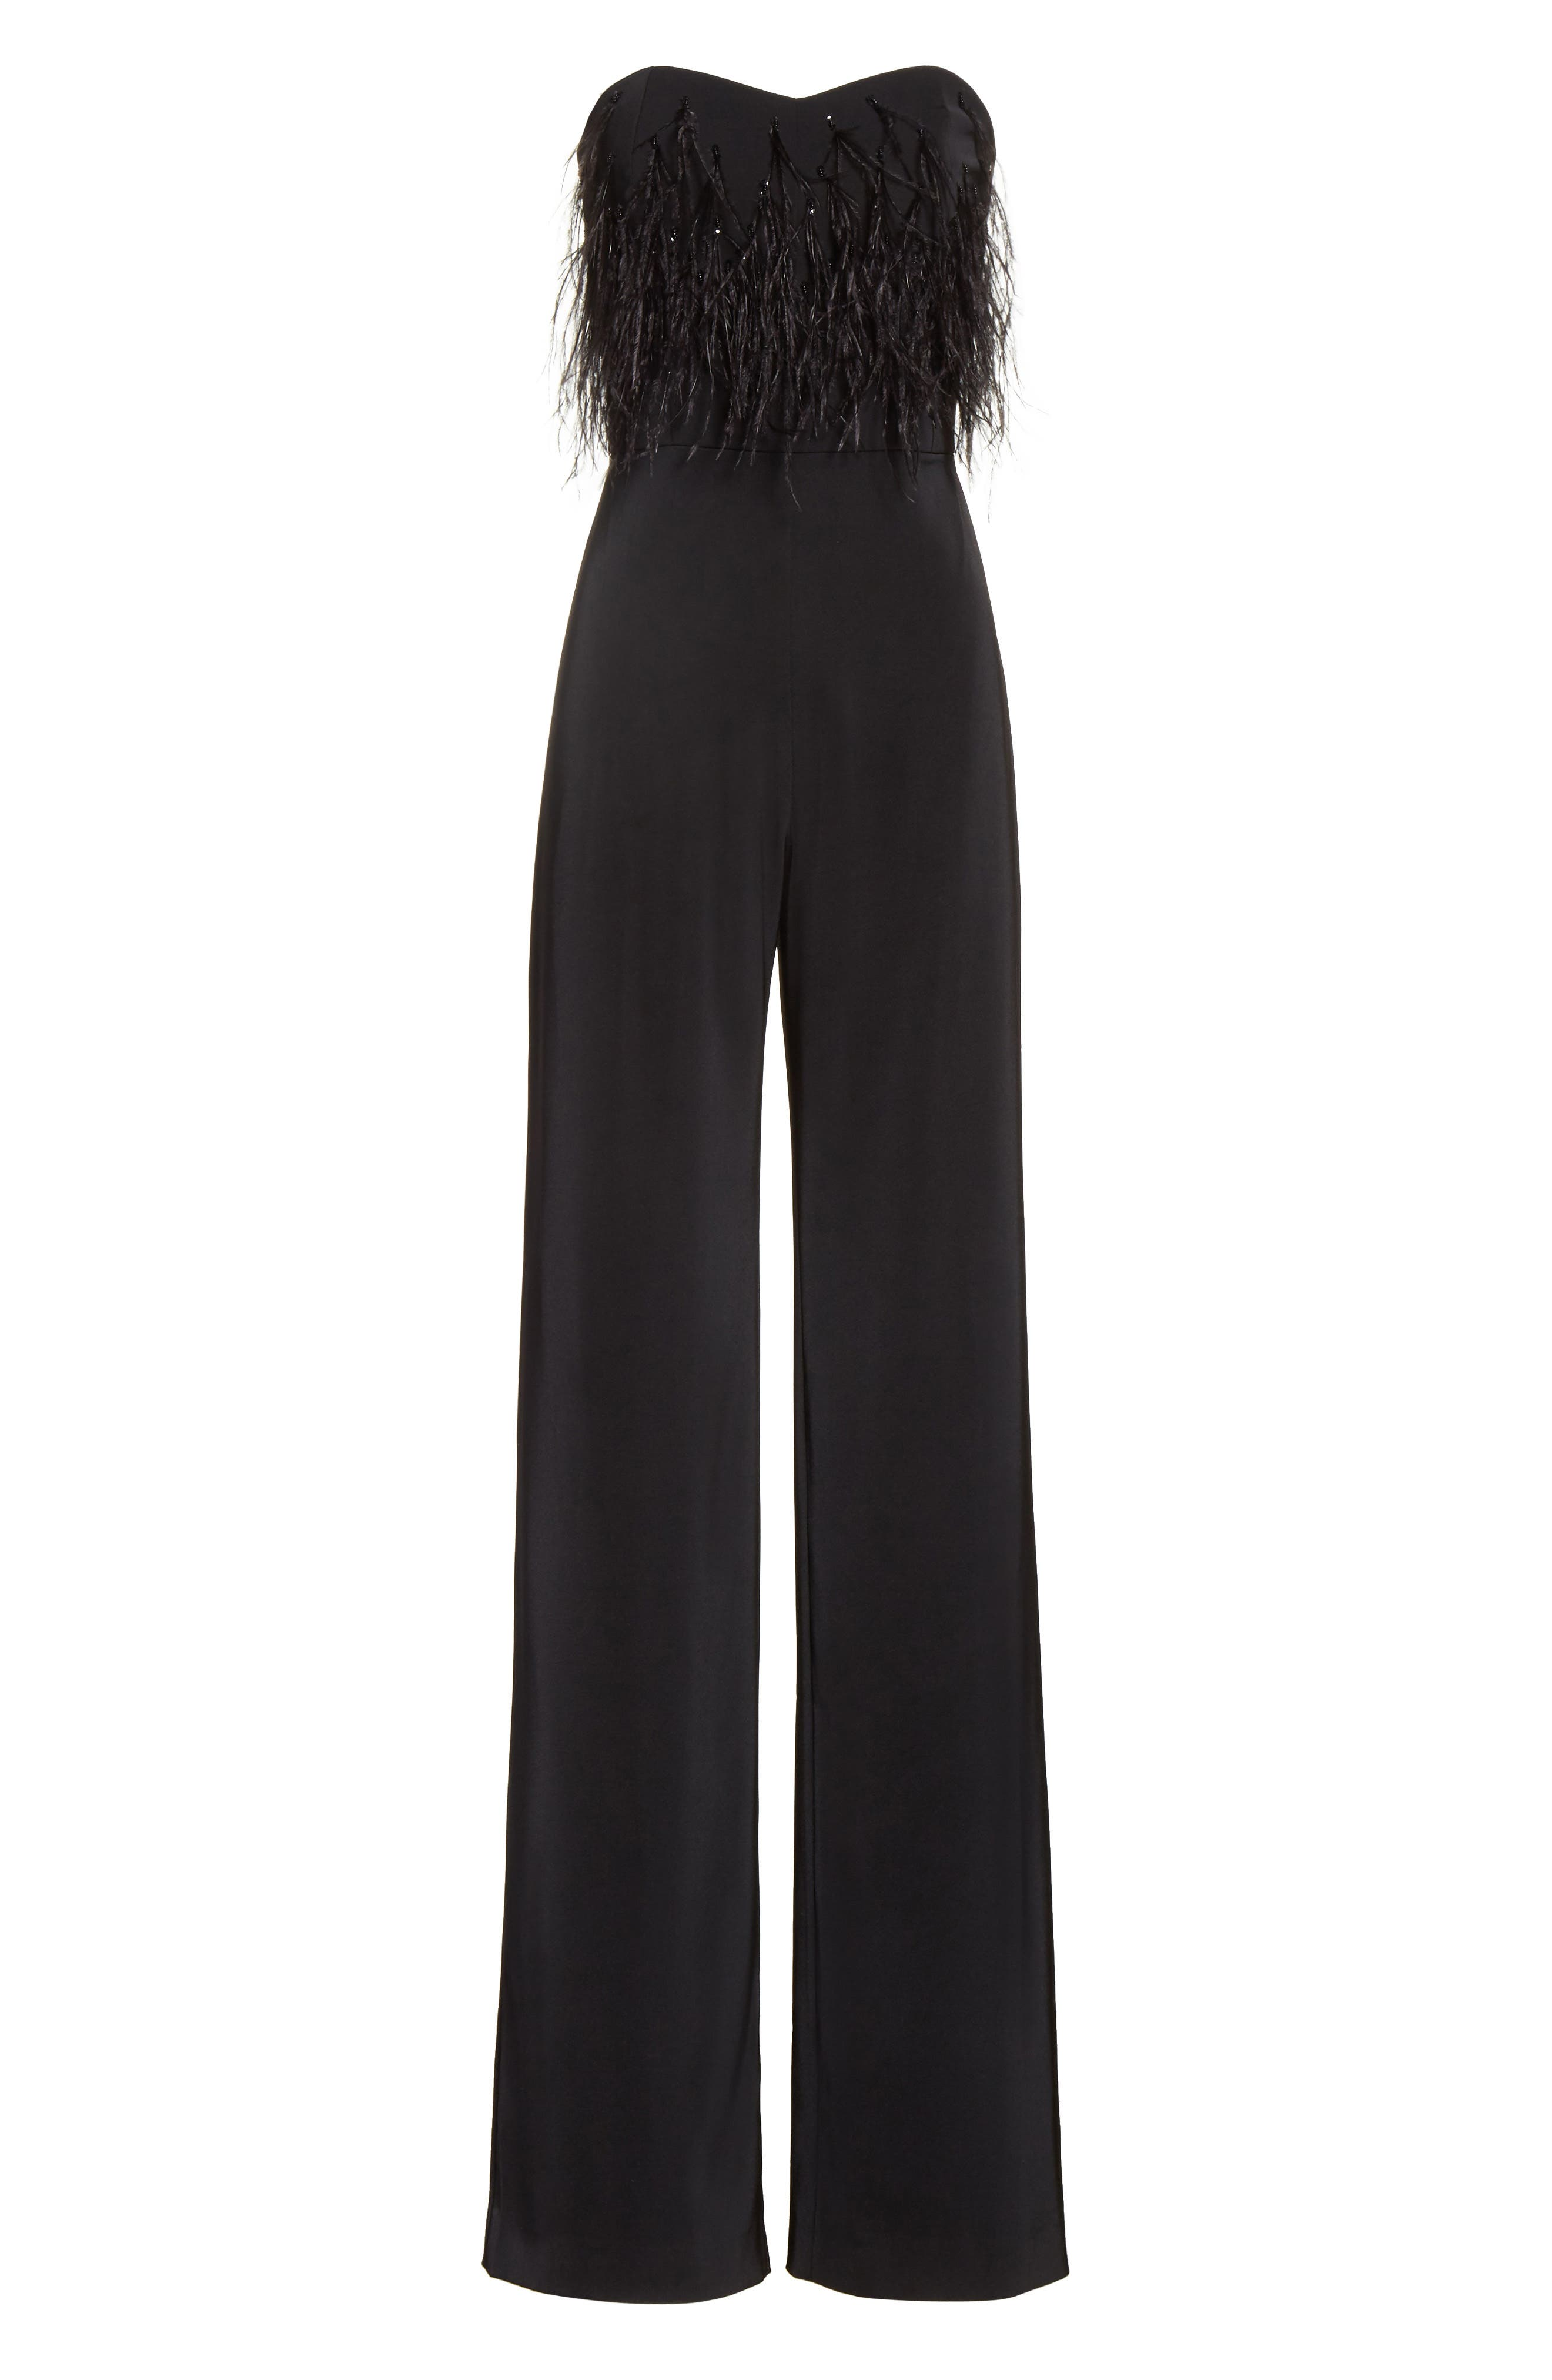 Faux Feather Trim Satin Backed Crepe Strapless Jumpsuit,                             Alternate thumbnail 6, color,                             Black Feather